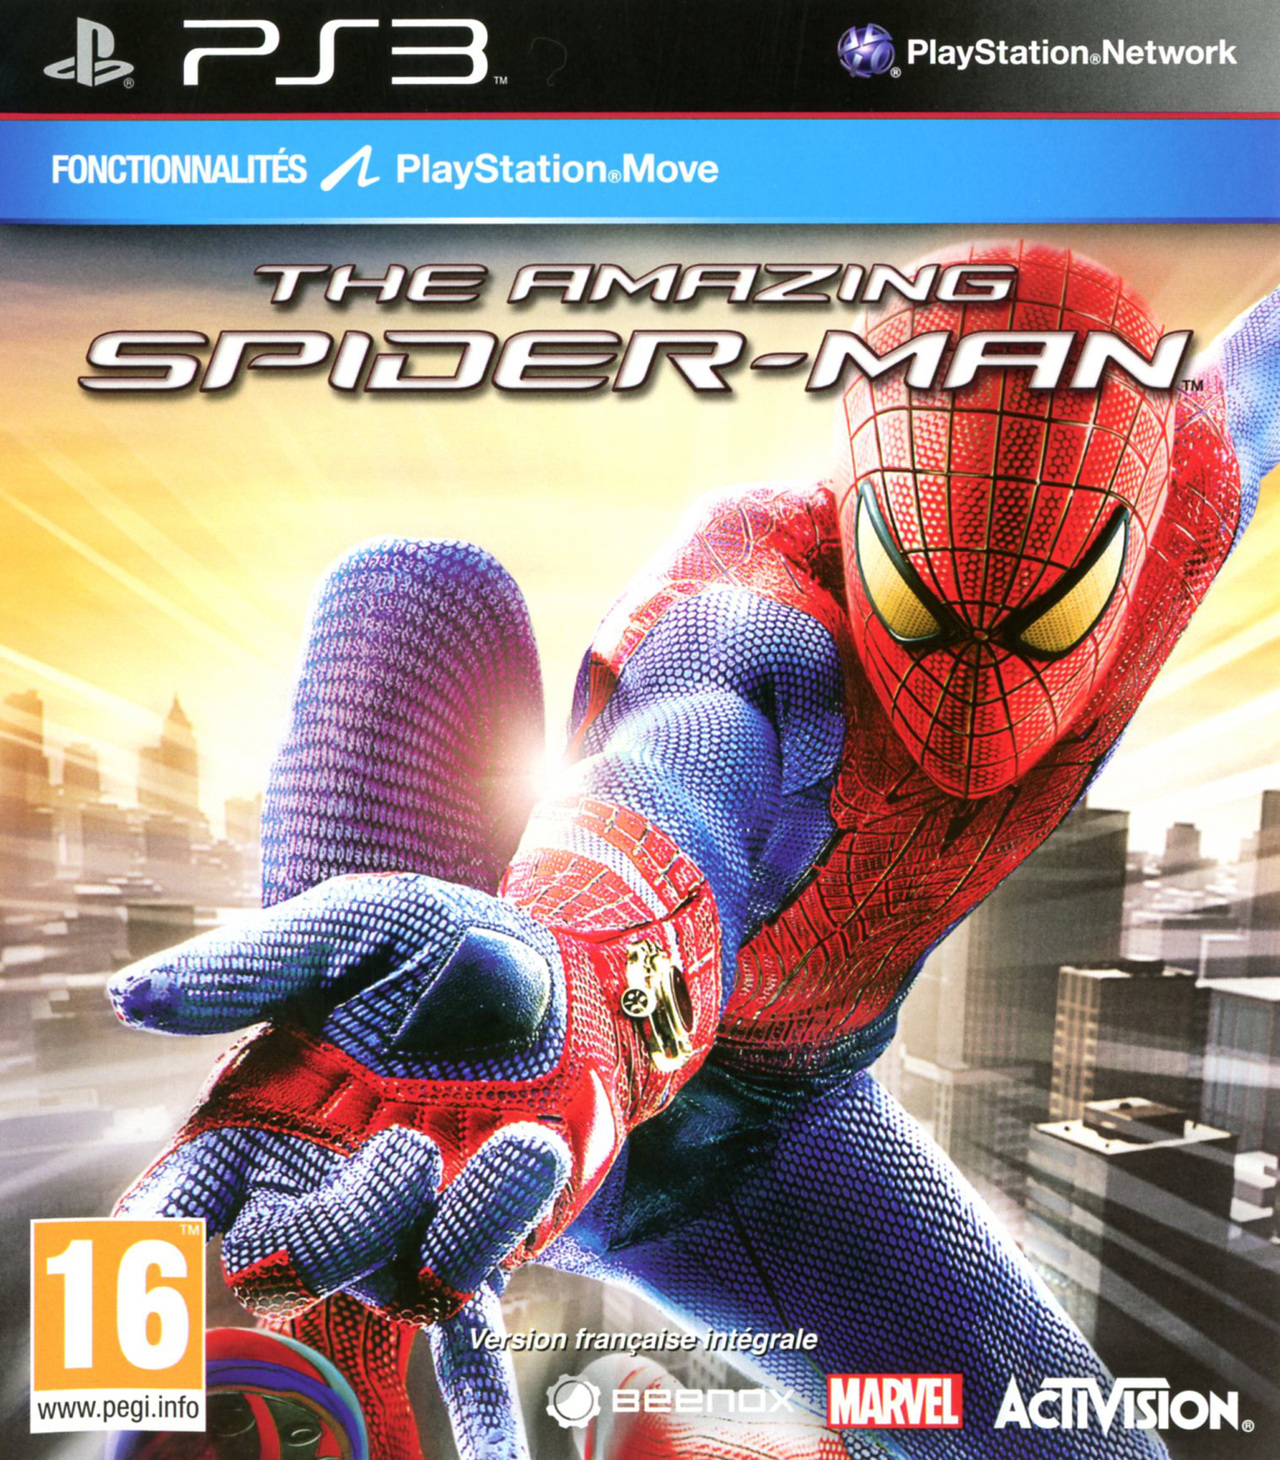 the amazing spider man sur playstation 3 jeuxvideocom